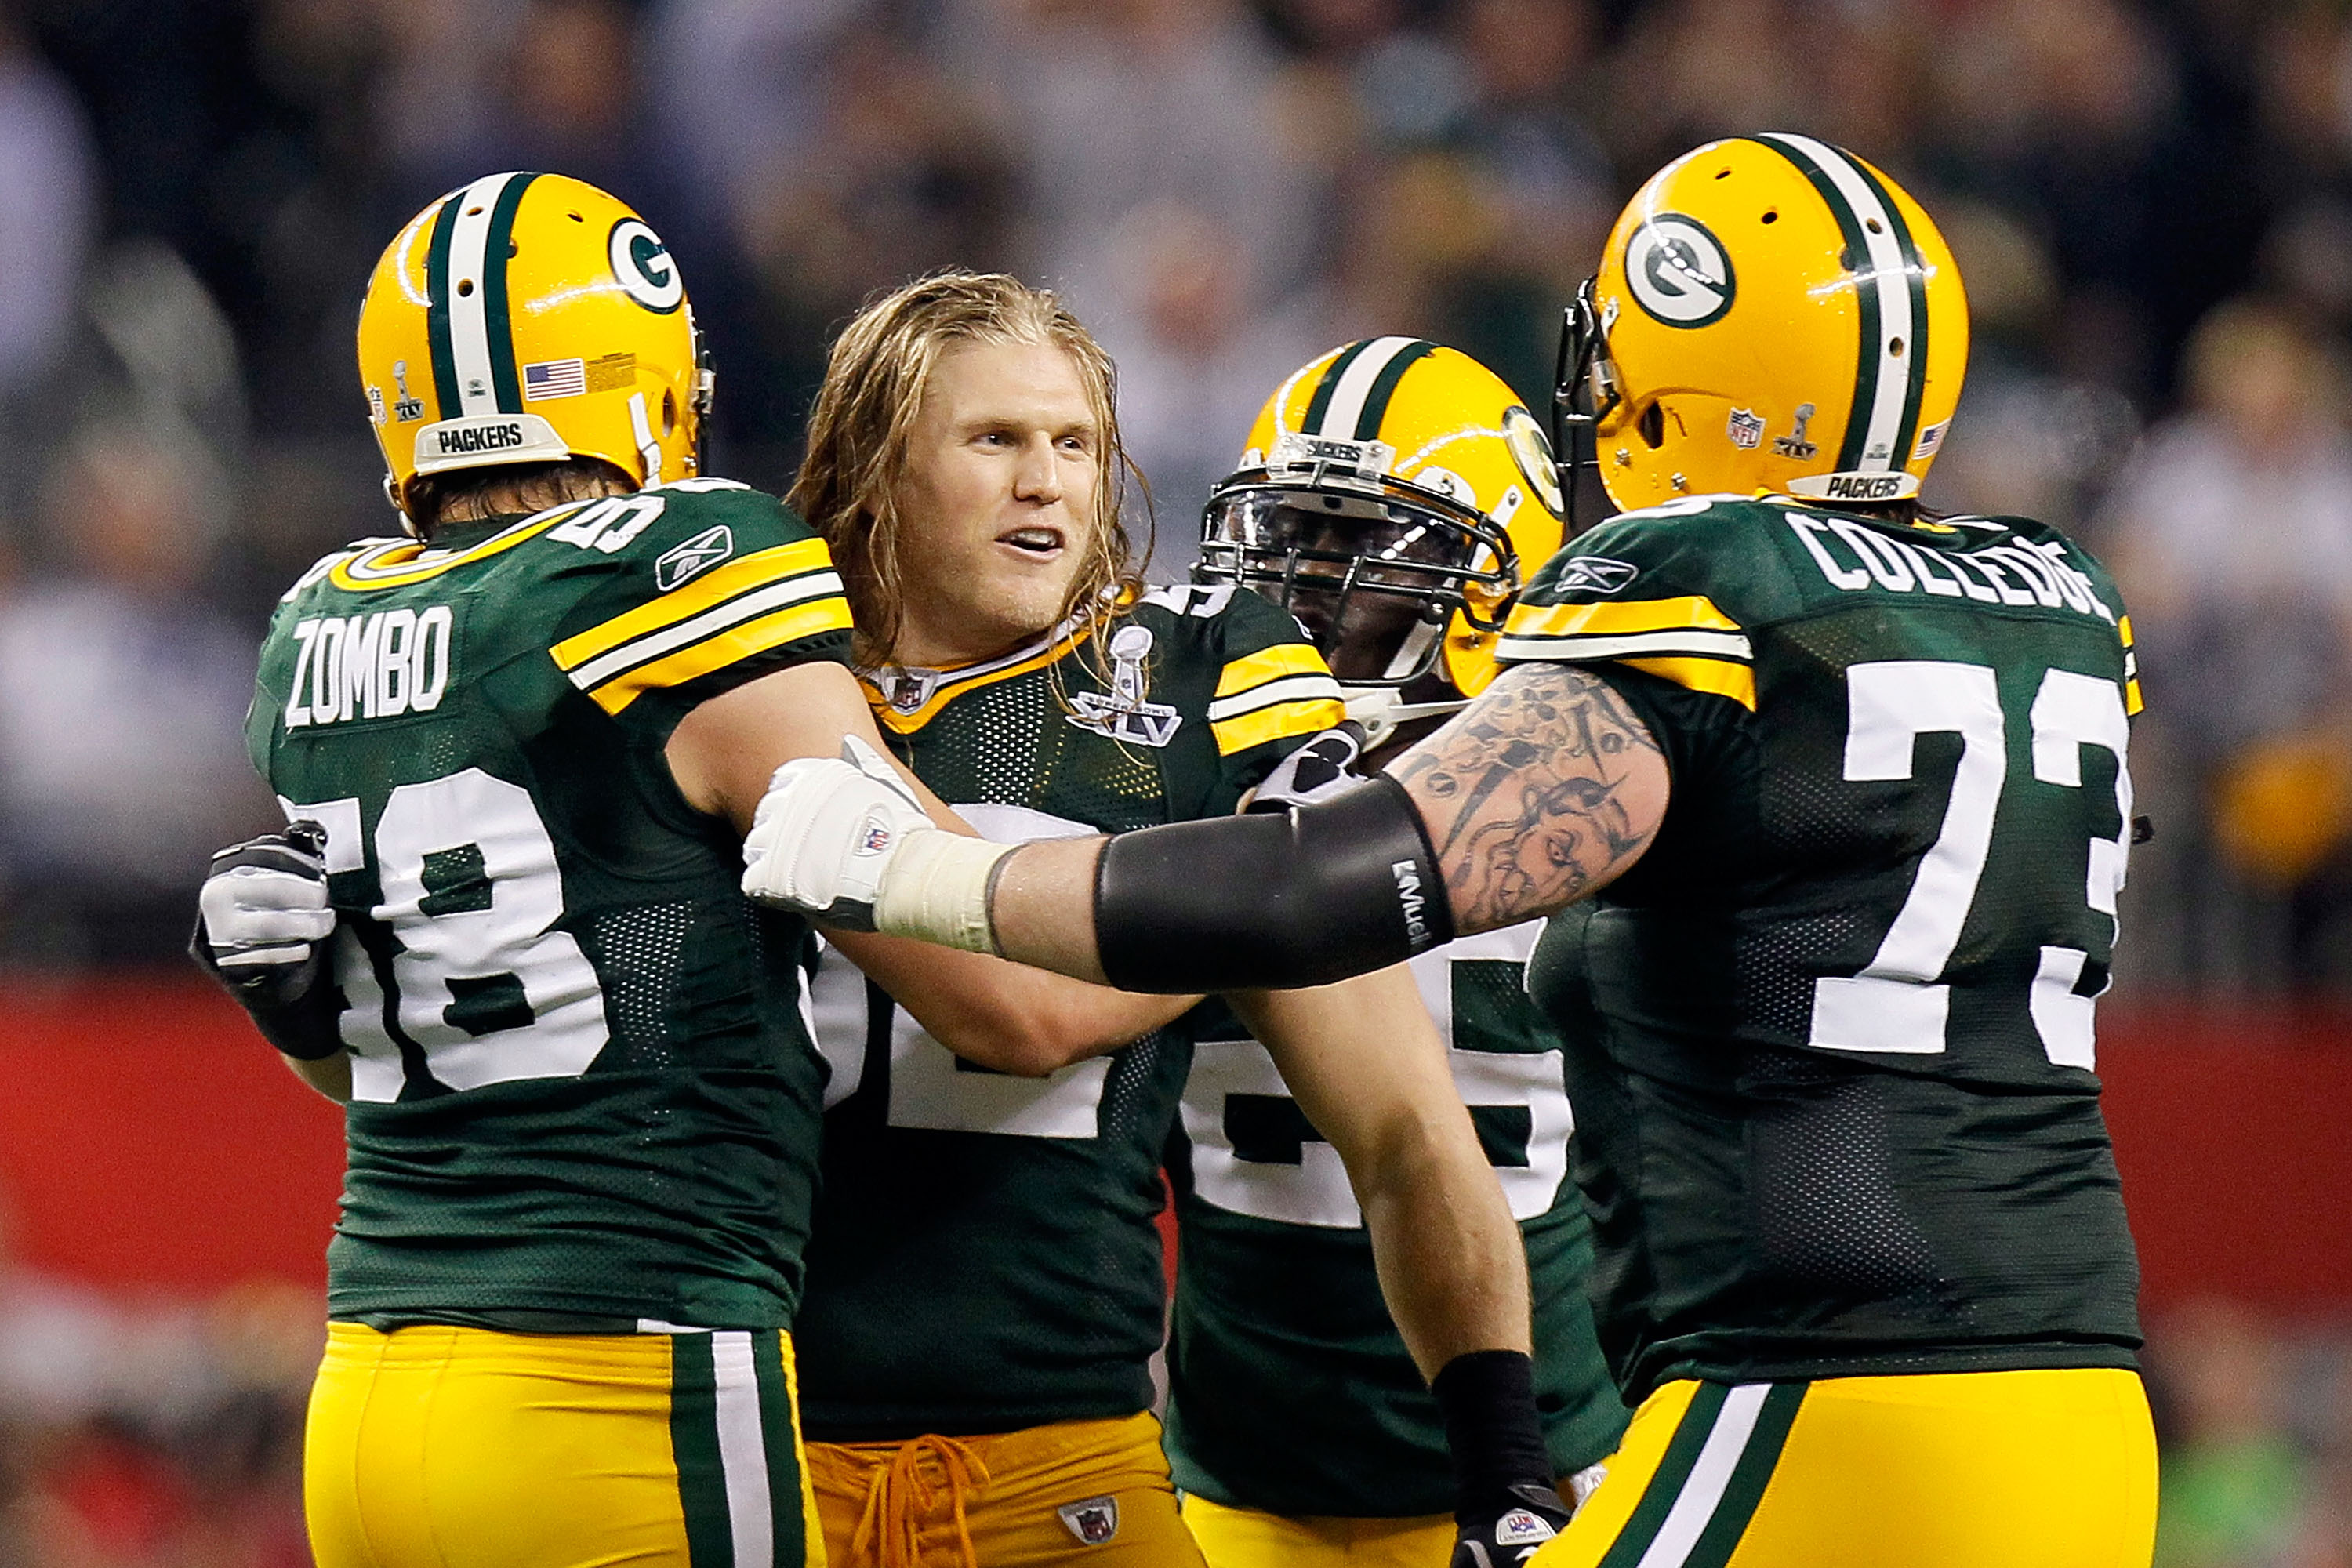 ARLINGTON, TX - FEBRUARY 06:  Clay Matthews #52 of the Green Bay Packers celebrates with teammates Frank Zombo #58 and Daryn Colledge #73 in the final minute of the Packers 31-25 win against the Pittsburgh Steelers during Super Bowl XLV at Cowboys Stadium